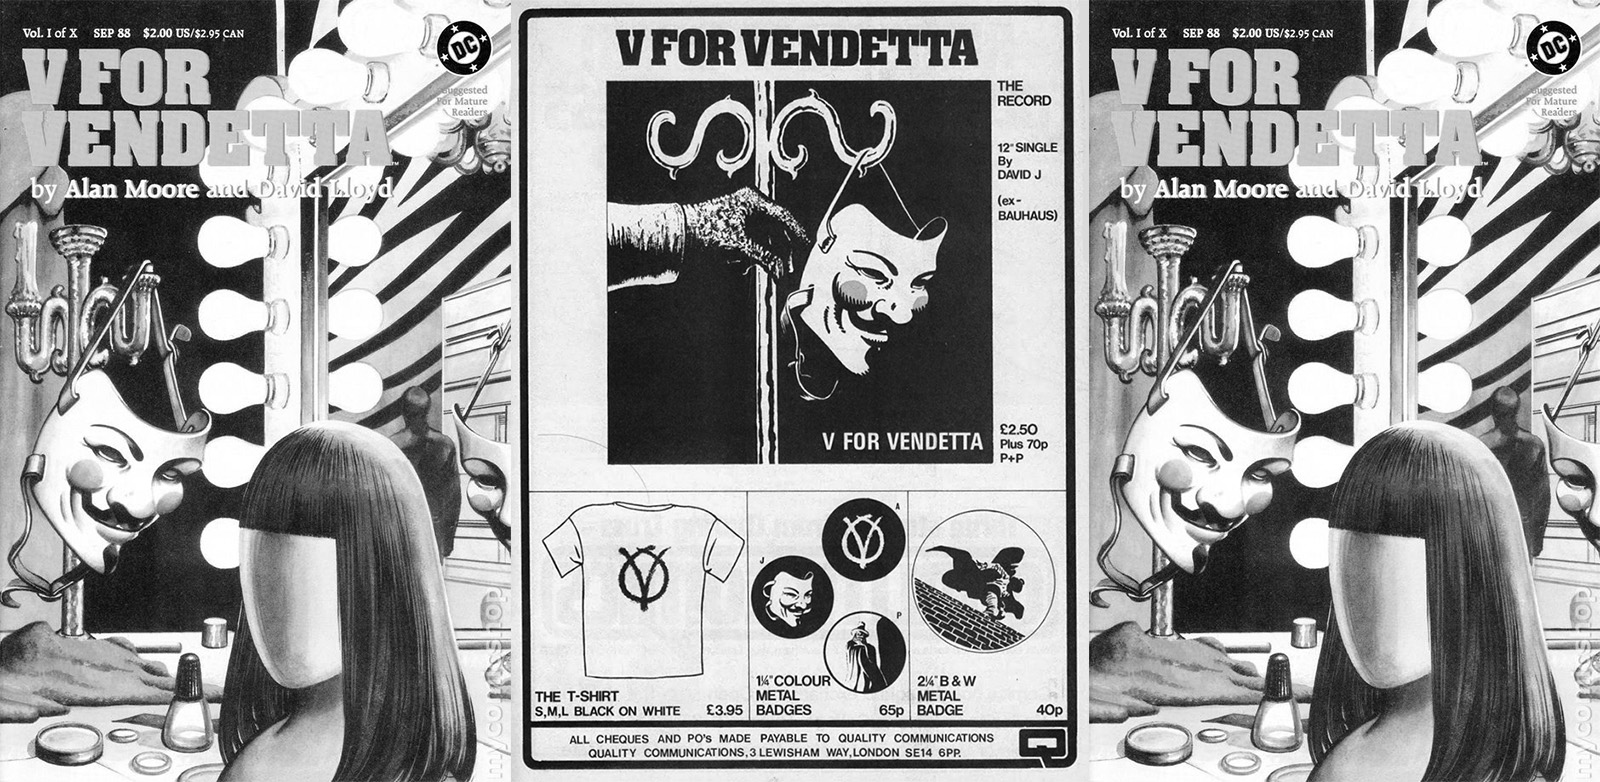 Michael Radford S 1984 Part 1 The Privations Of An Alternative Past Present And Future V For Vendetta And The Last Inch Wanderings 19 52 A Year In The Country